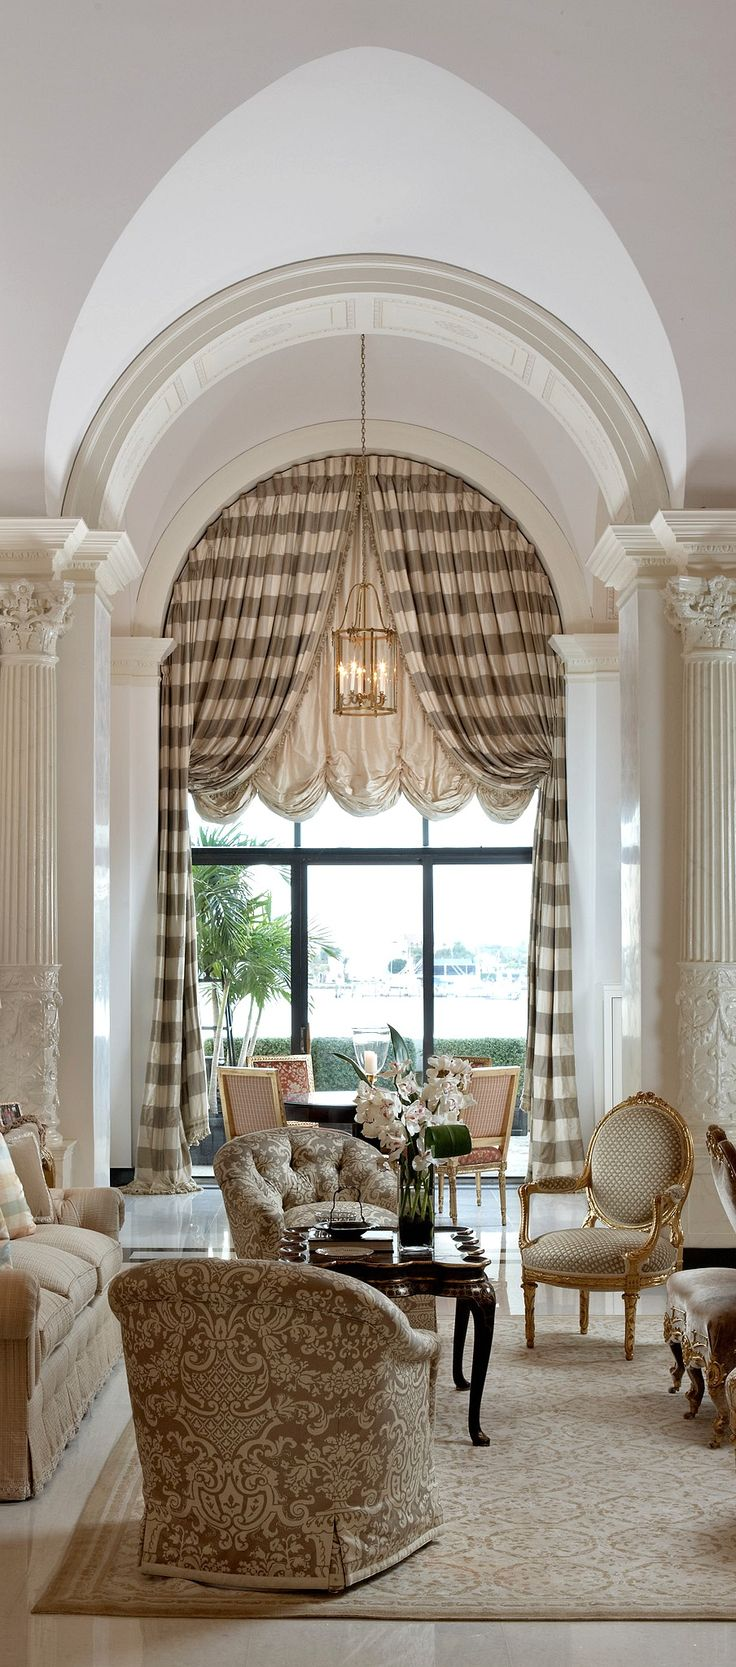 Best 25 arched window treatments ideas on pinterest for Best shades for windows